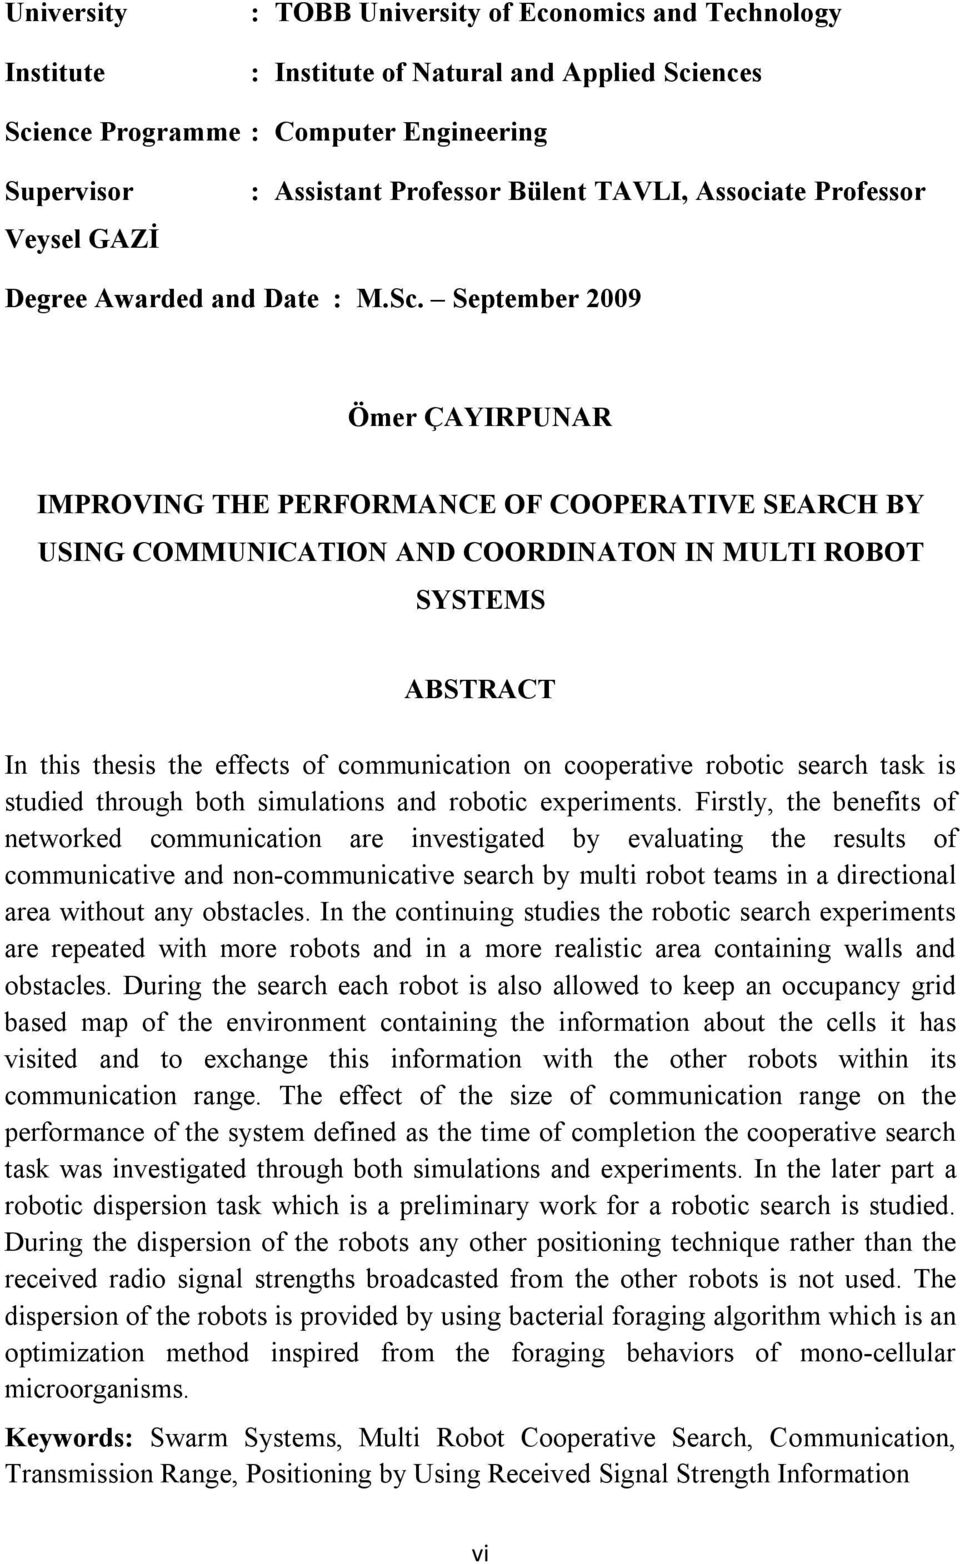 September 2009 Ömer ÇAYIRPUNAR IMPROVING THE PERFORMANCE OF COOPERATIVE SEARCH BY USING COMMUNICATION AND COORDINATON IN MULTI ROBOT SYSTEMS ABSTRACT In this thesis the effects of communication on